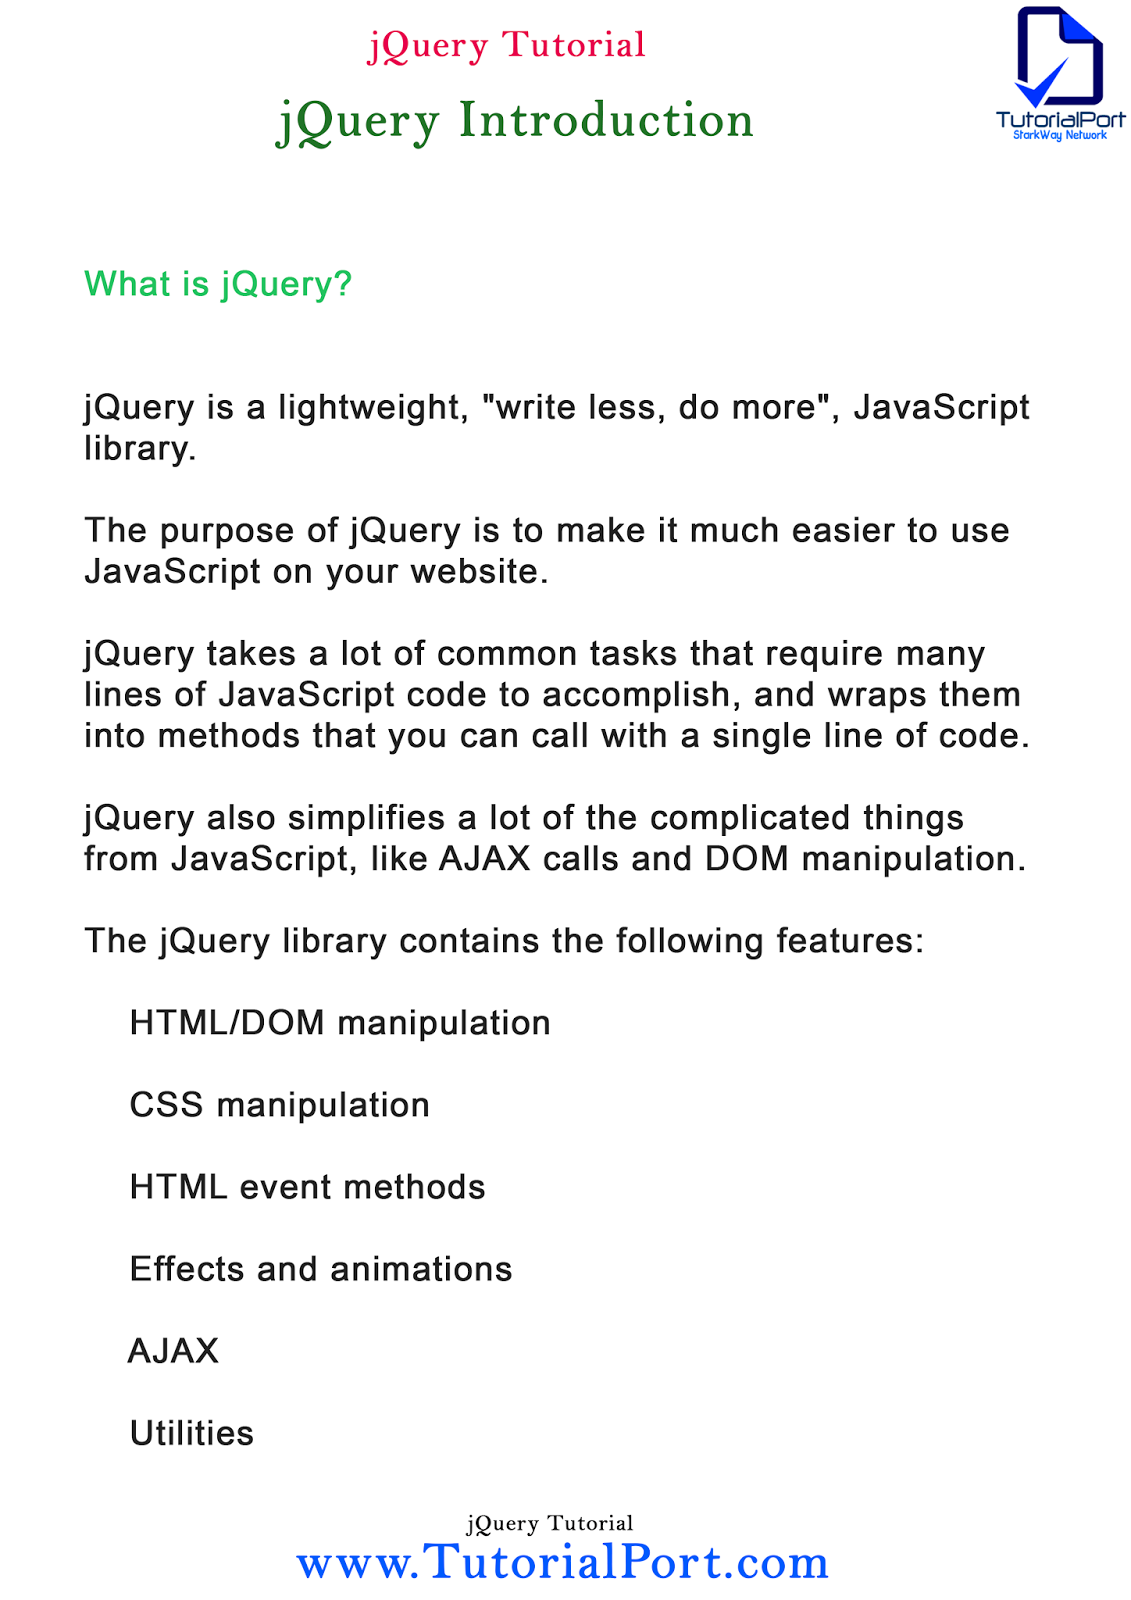 What is jquery jquery introduction jquery tutorial how to from javascript like ajax calls and dom manipulation the jquery library contains the following features htmldom manipulation css manipulation baditri Choice Image